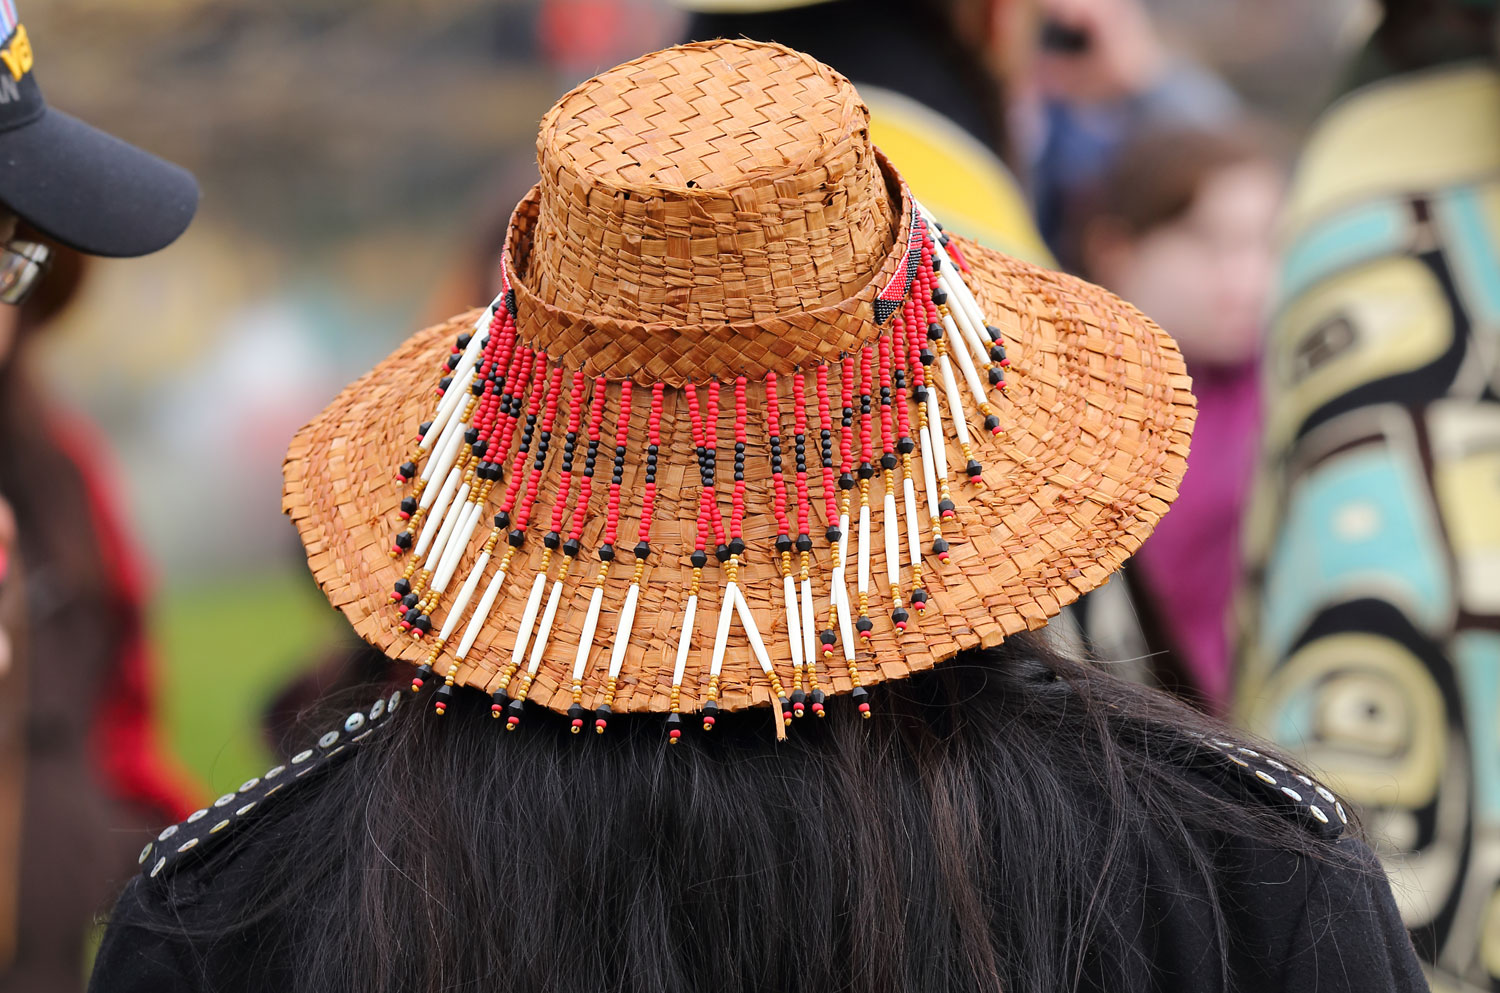 The beaded hatband can also be worn as a headband.